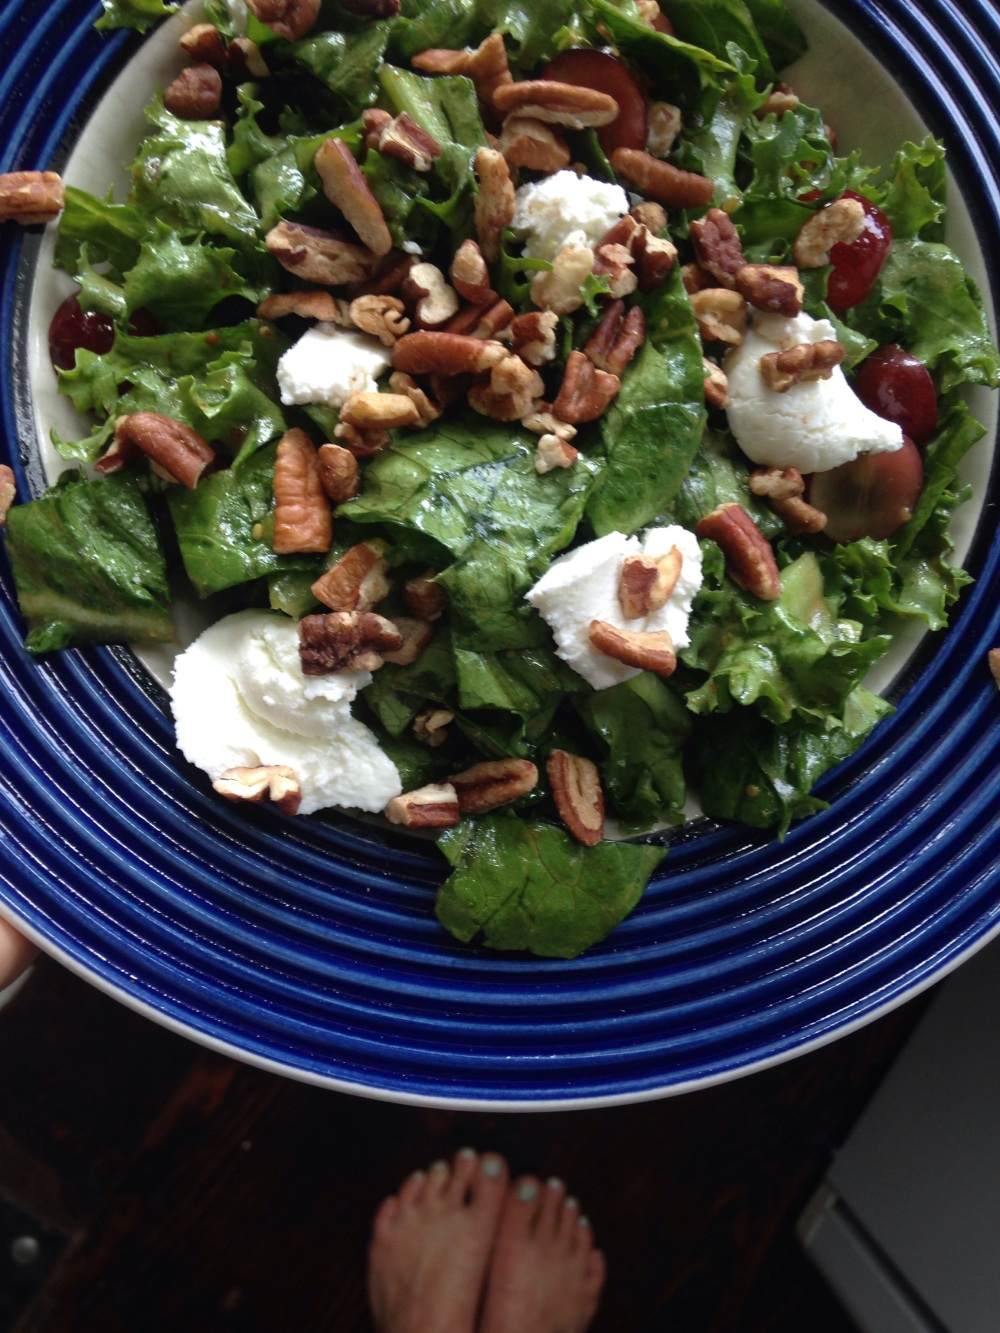 Endive, lettuce and grape salad with goat cheese and pecans